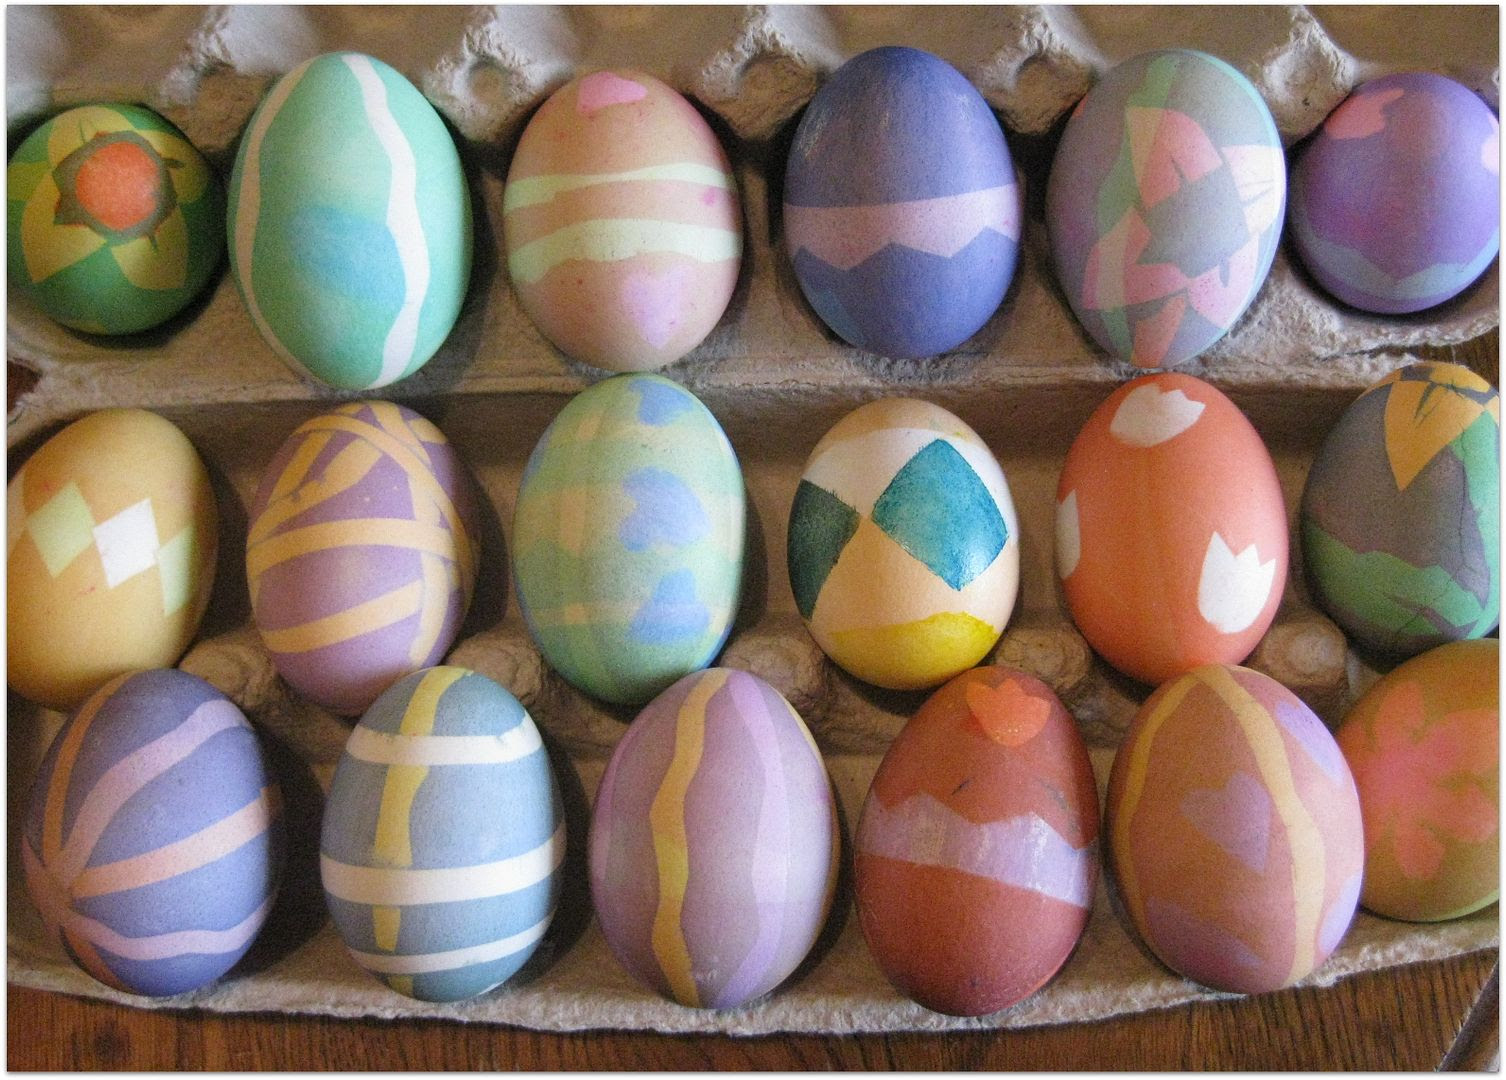 Easter Eggs by Angie Ouellette-Tower for godsgrowinggarden.com photo IMG_2306_zps5e0a8a69.jpg